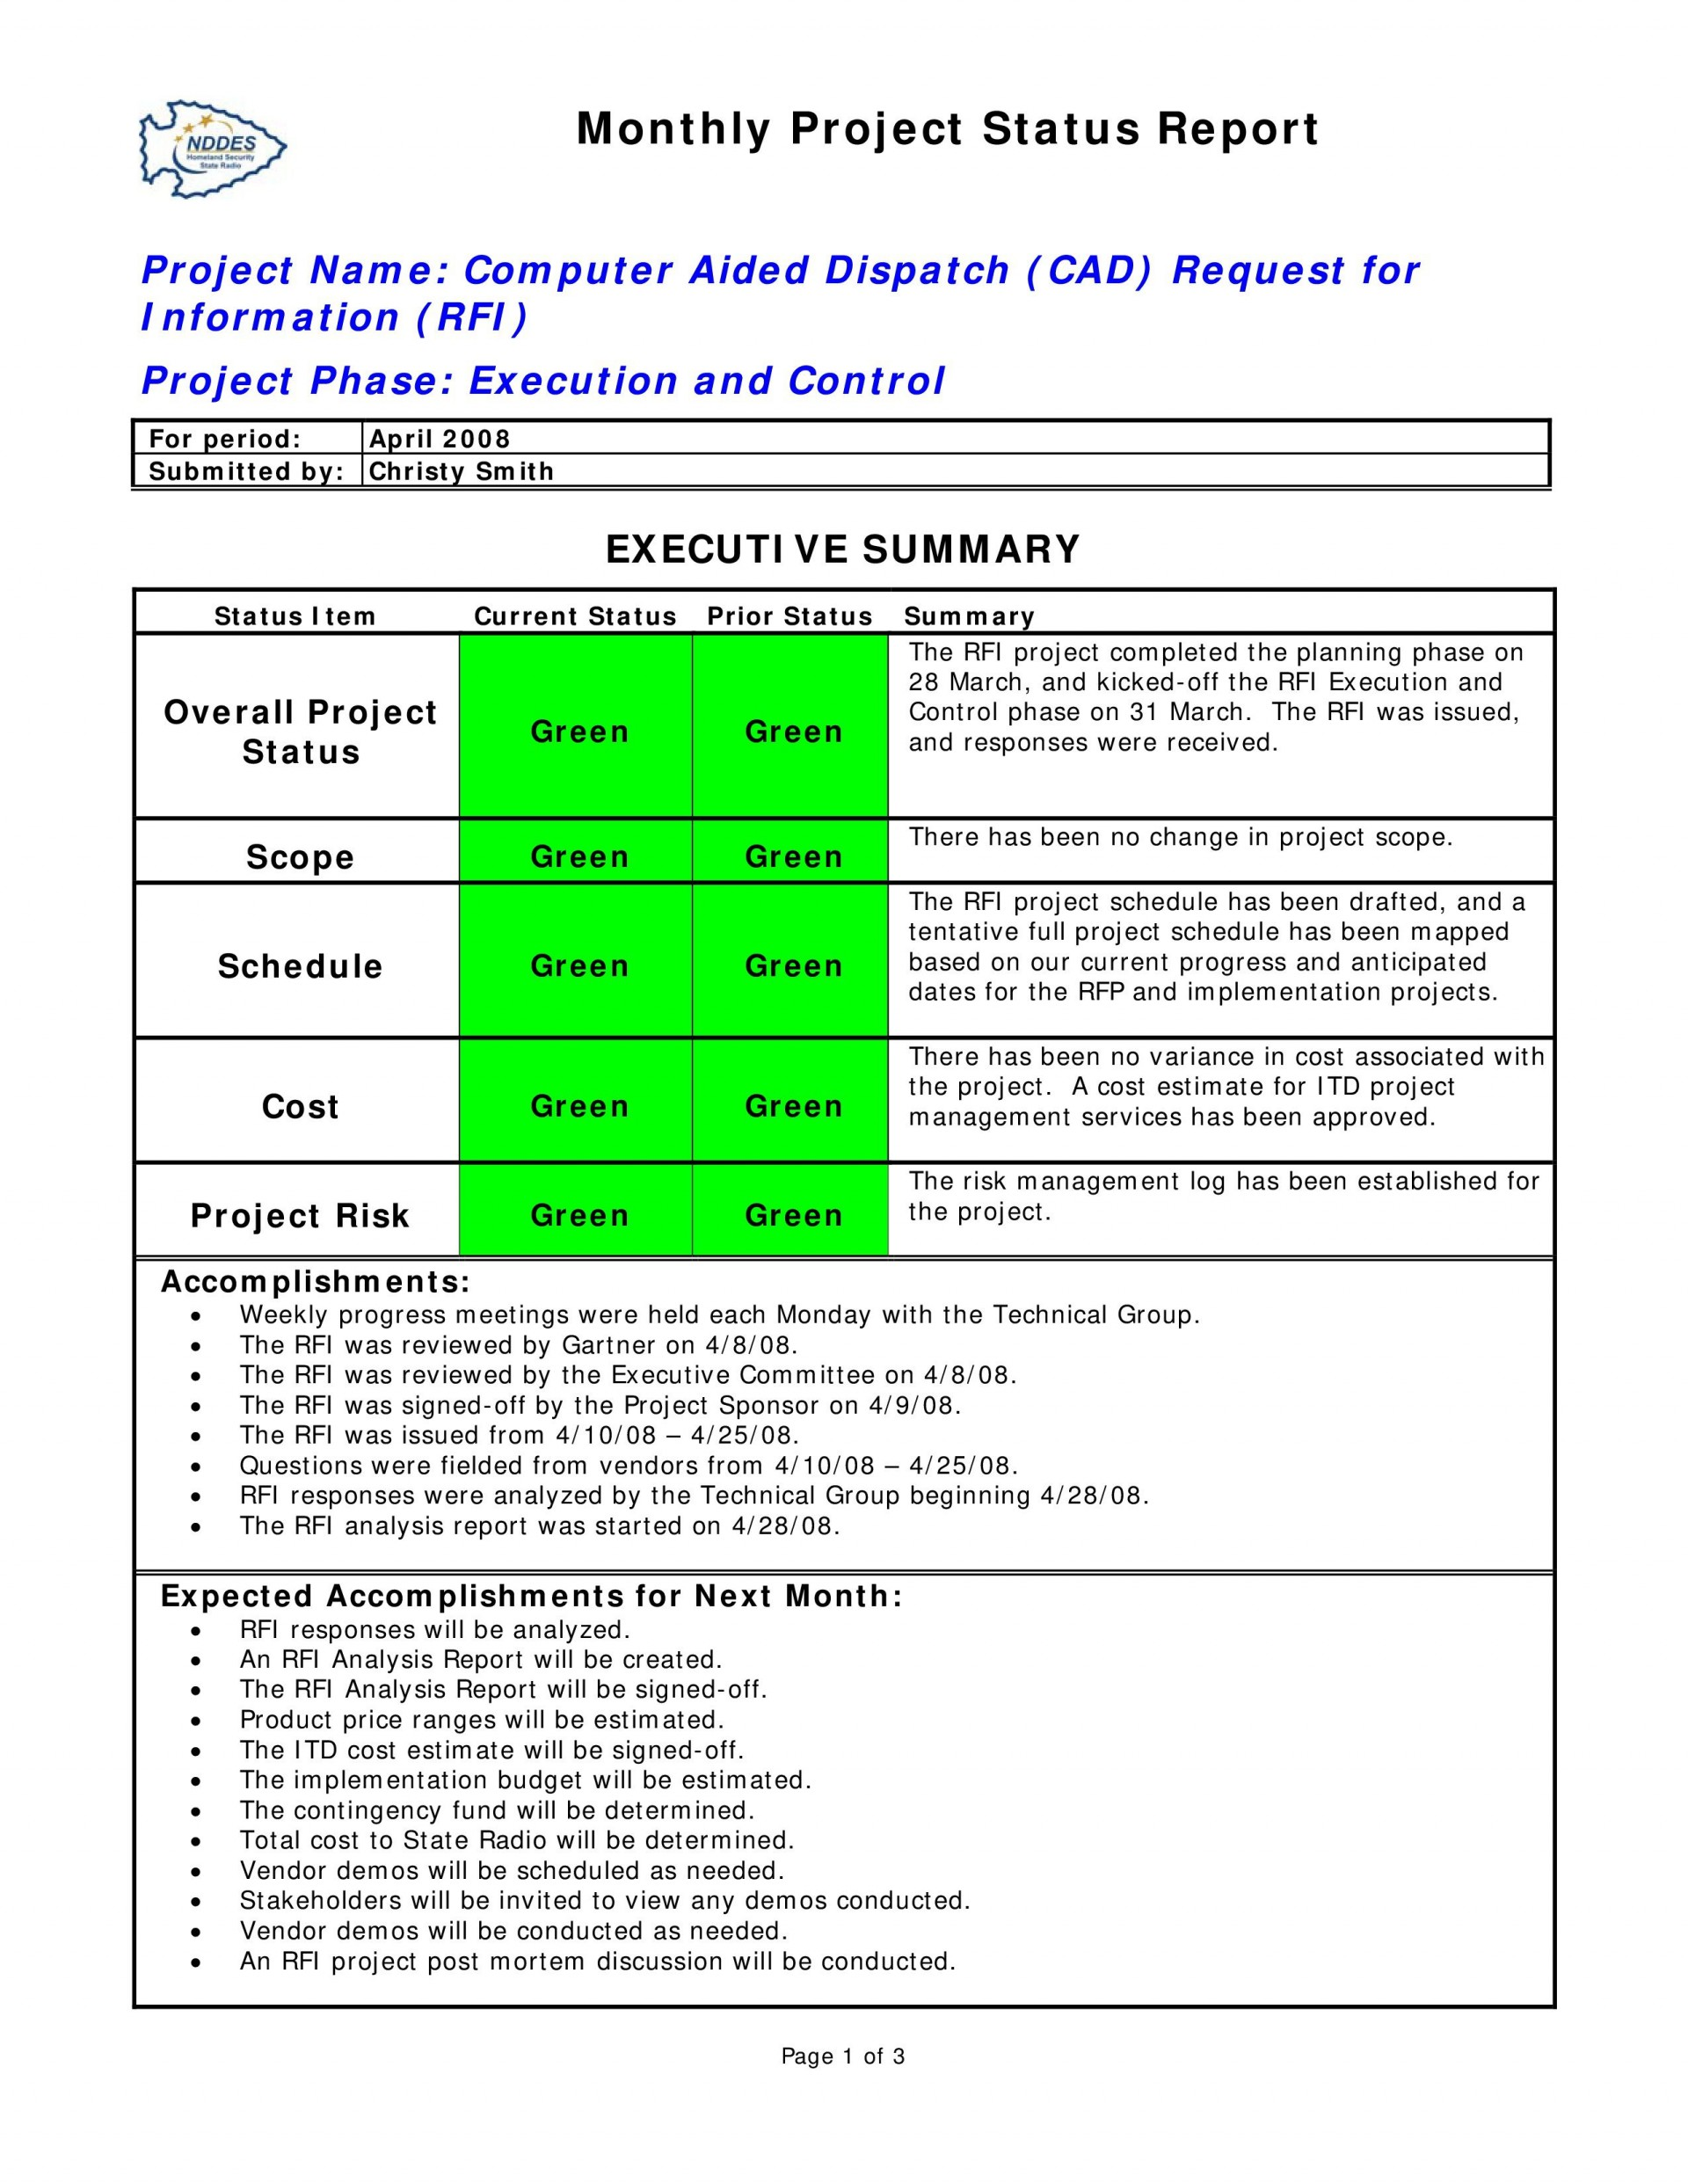 003 Wondrou Project Statu Report Template Design  Example Pdf Powerpoint Monthly1920